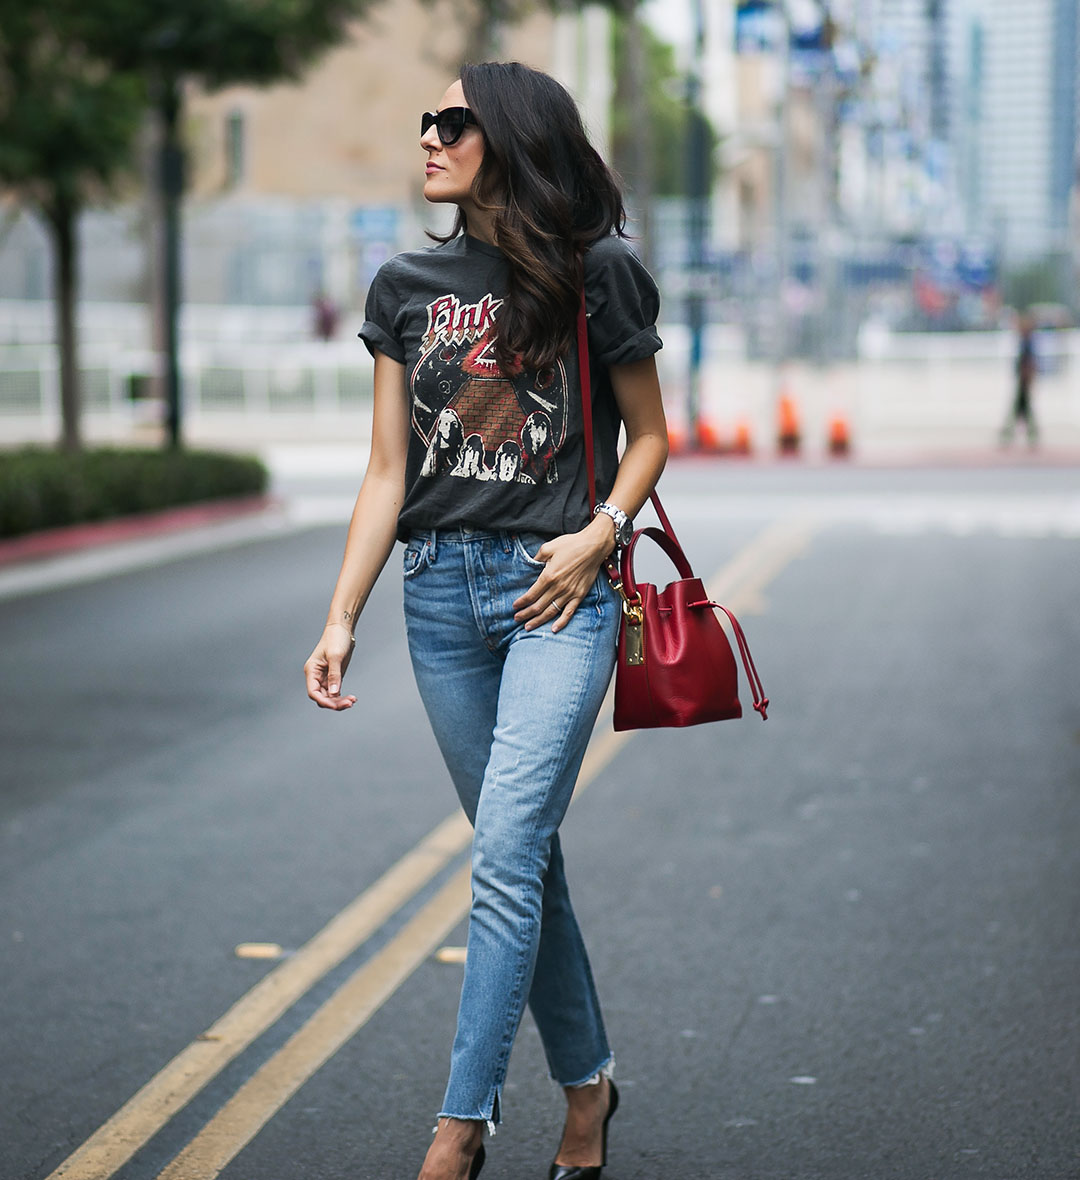 Band-Tees-and-Streetstyle.jpg